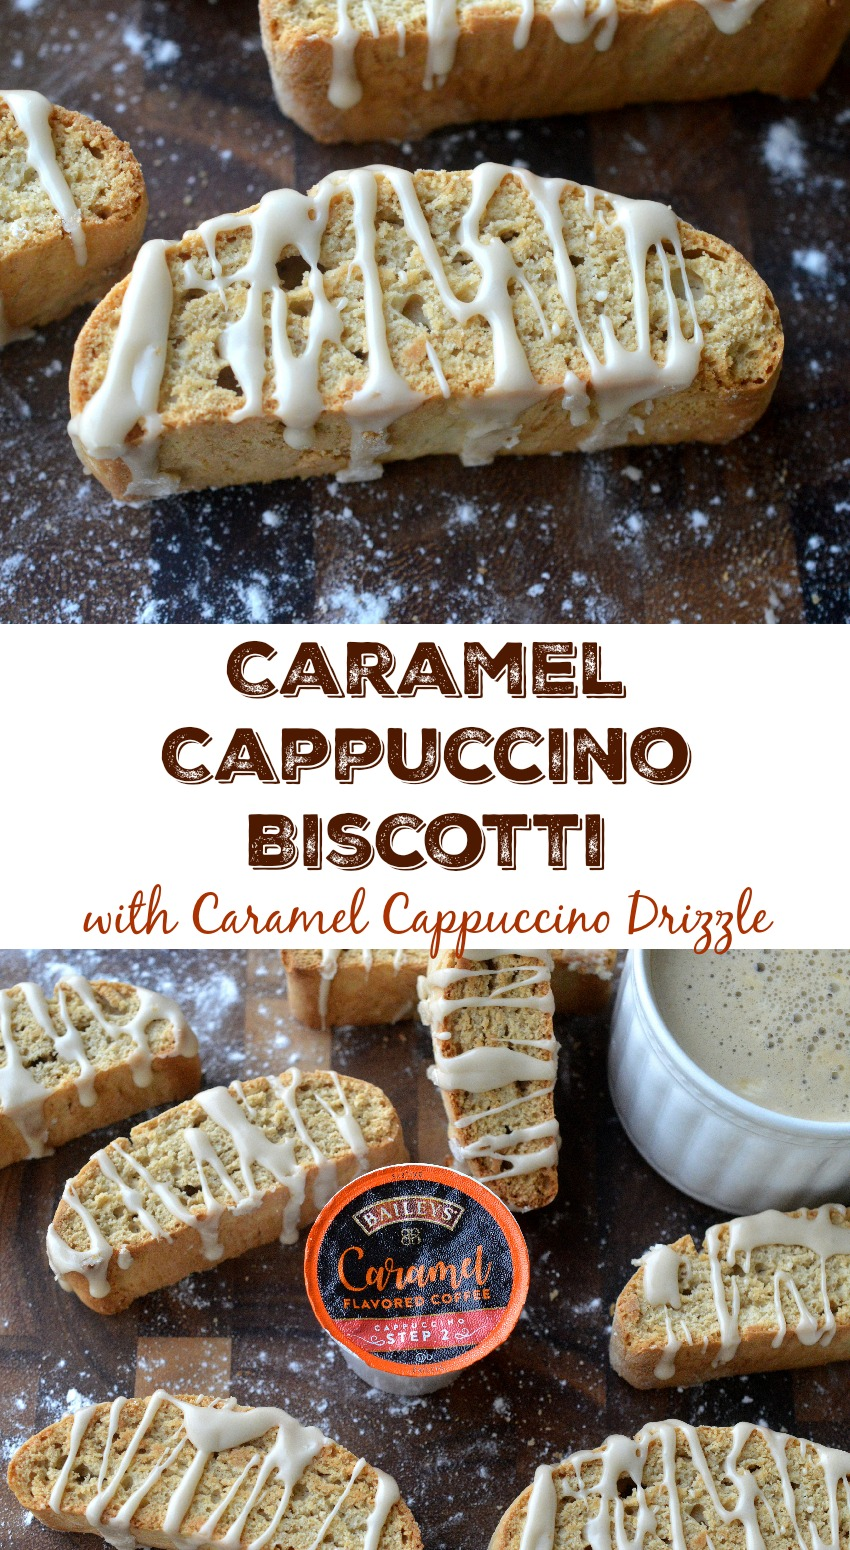 Caramel Cappuccino Biscotti with Caramel Cappuccino Drizzle! Easy to make and deliciously different!